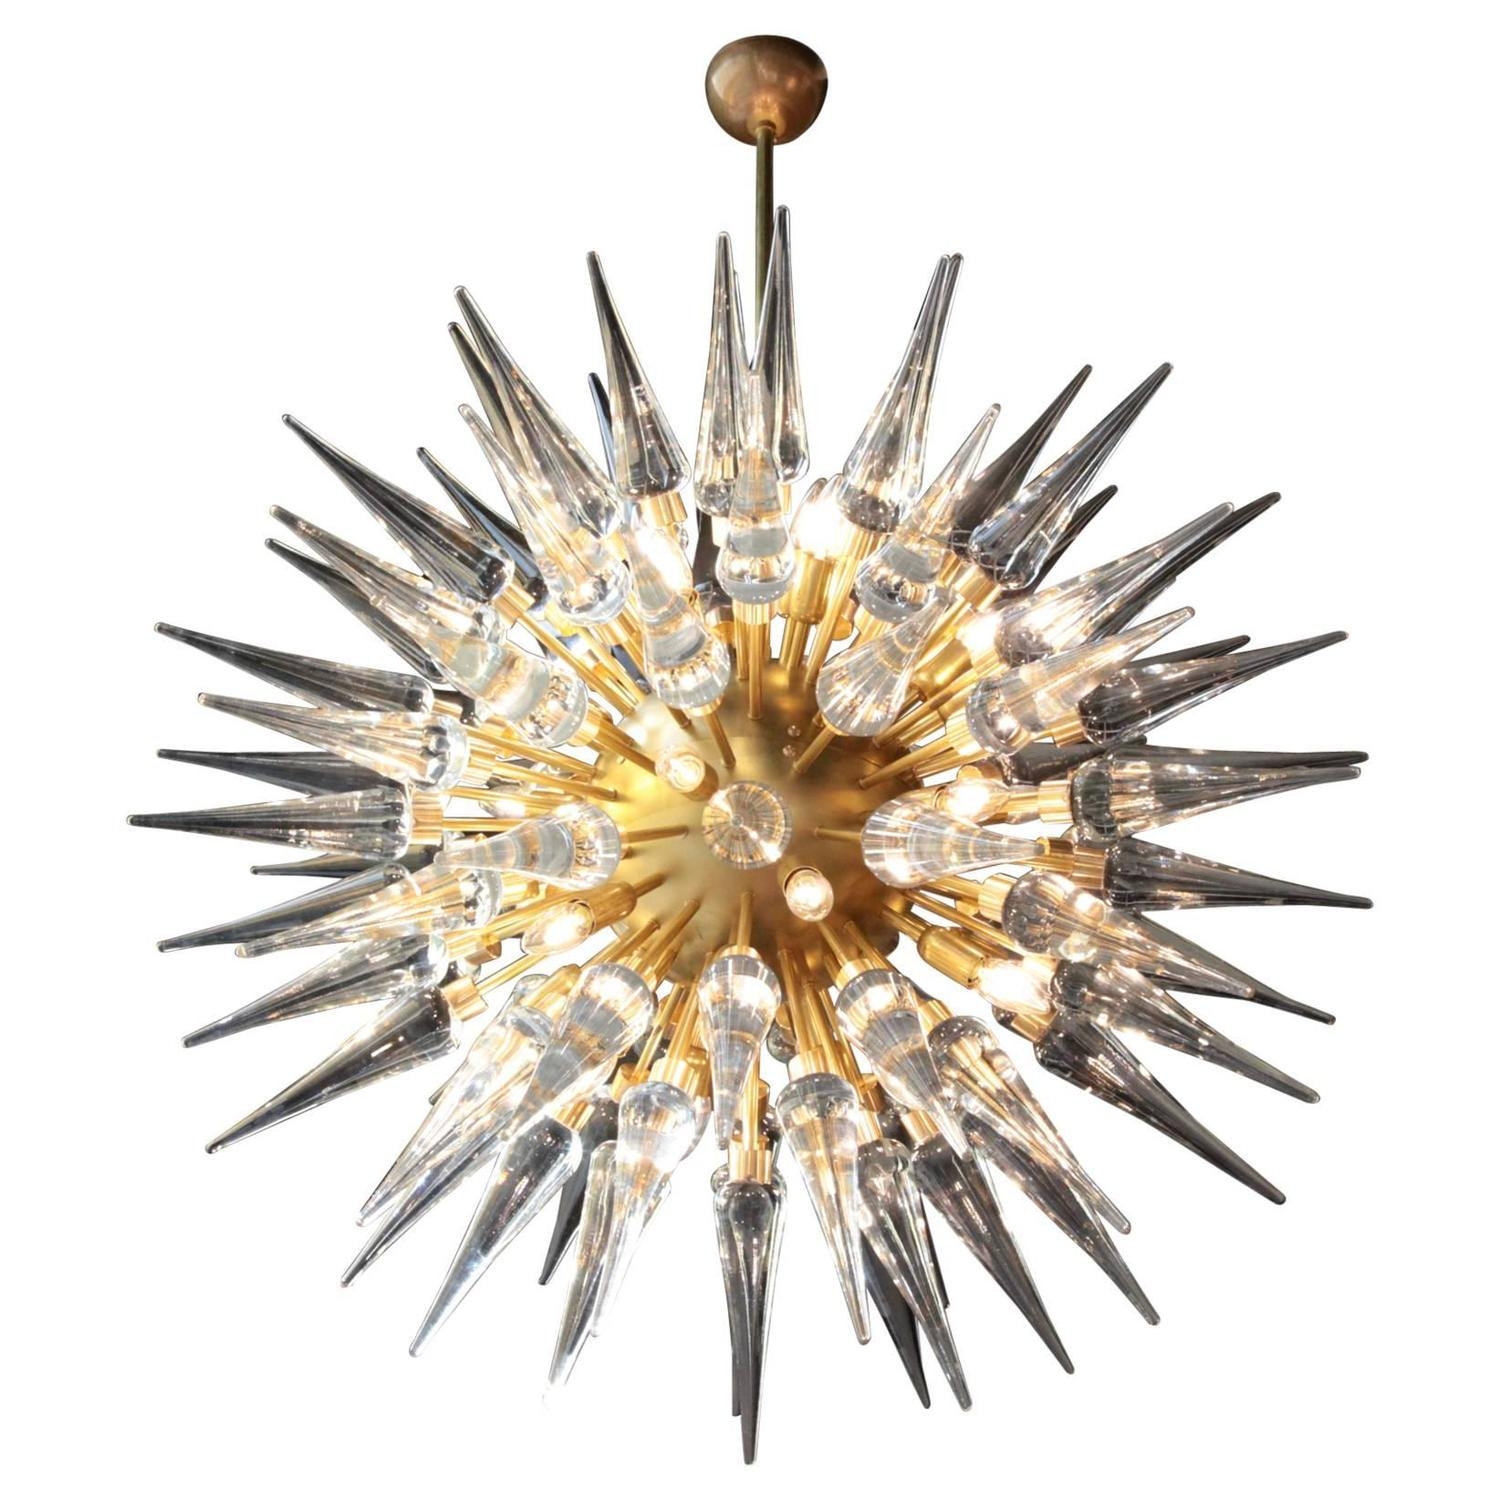 item duchess in antique finish shown light marble quoizel capitol cfm and inch glass wide chandelier grey nickel lighting